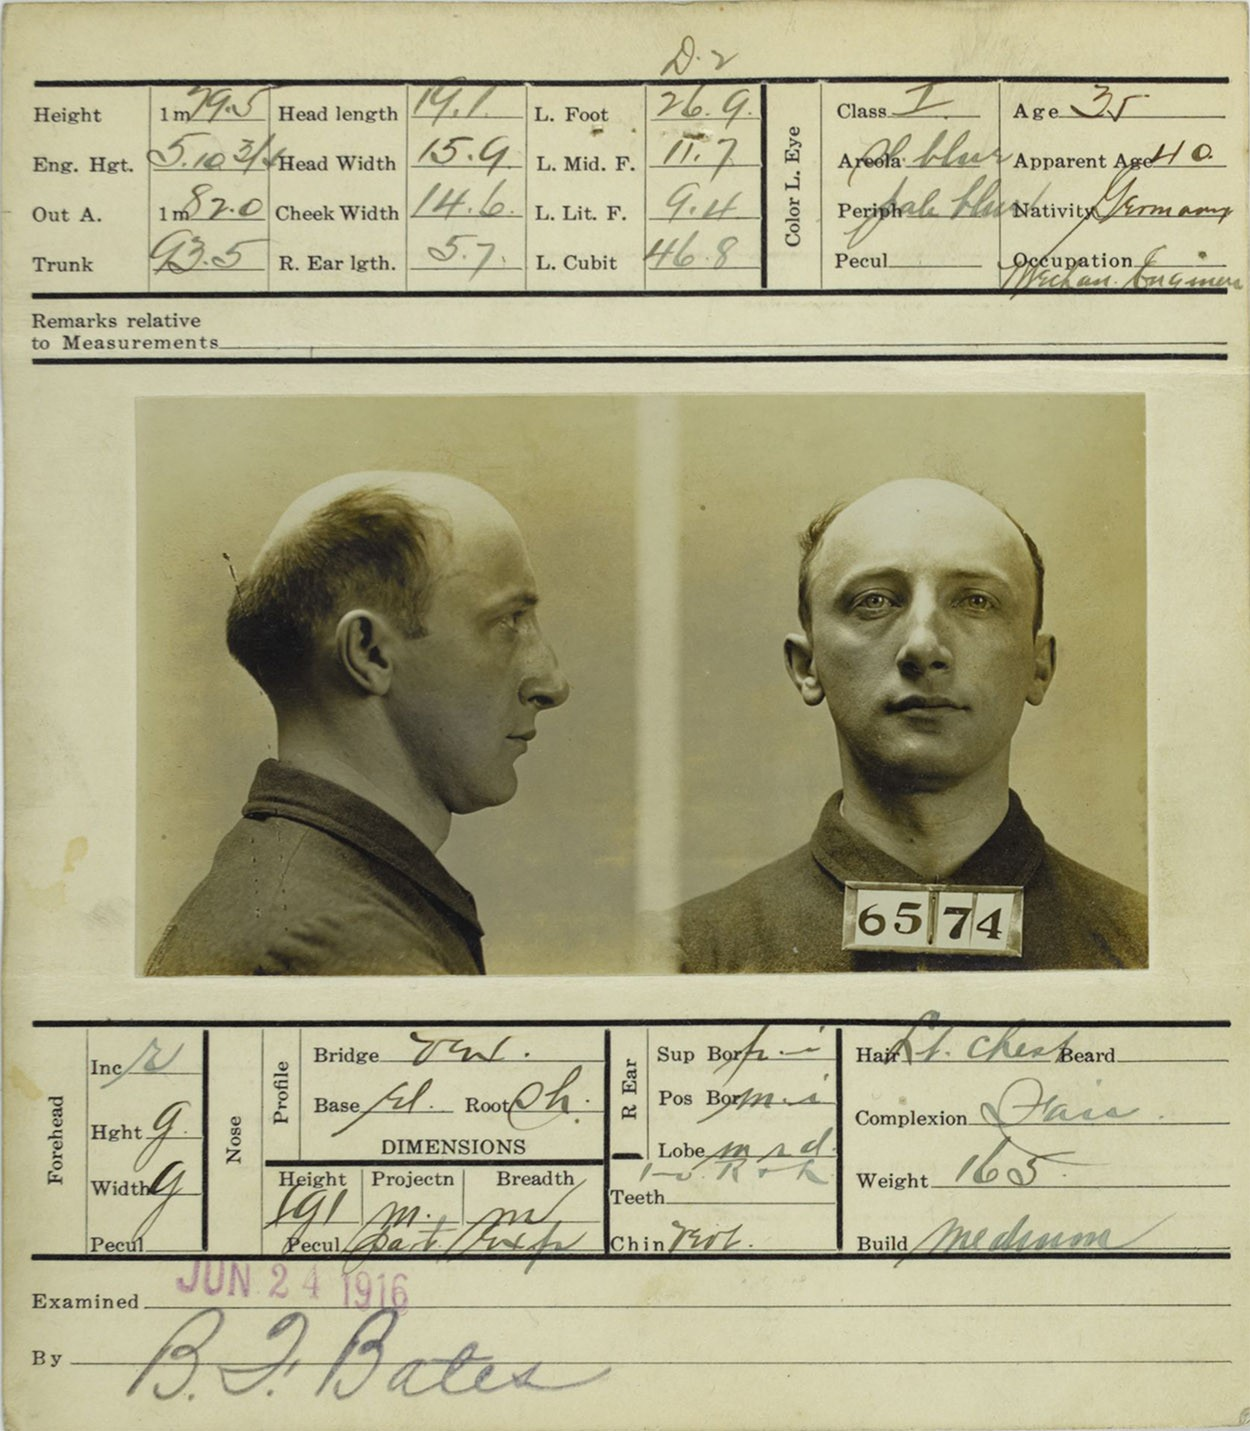 Arrest Record of Robert Fay